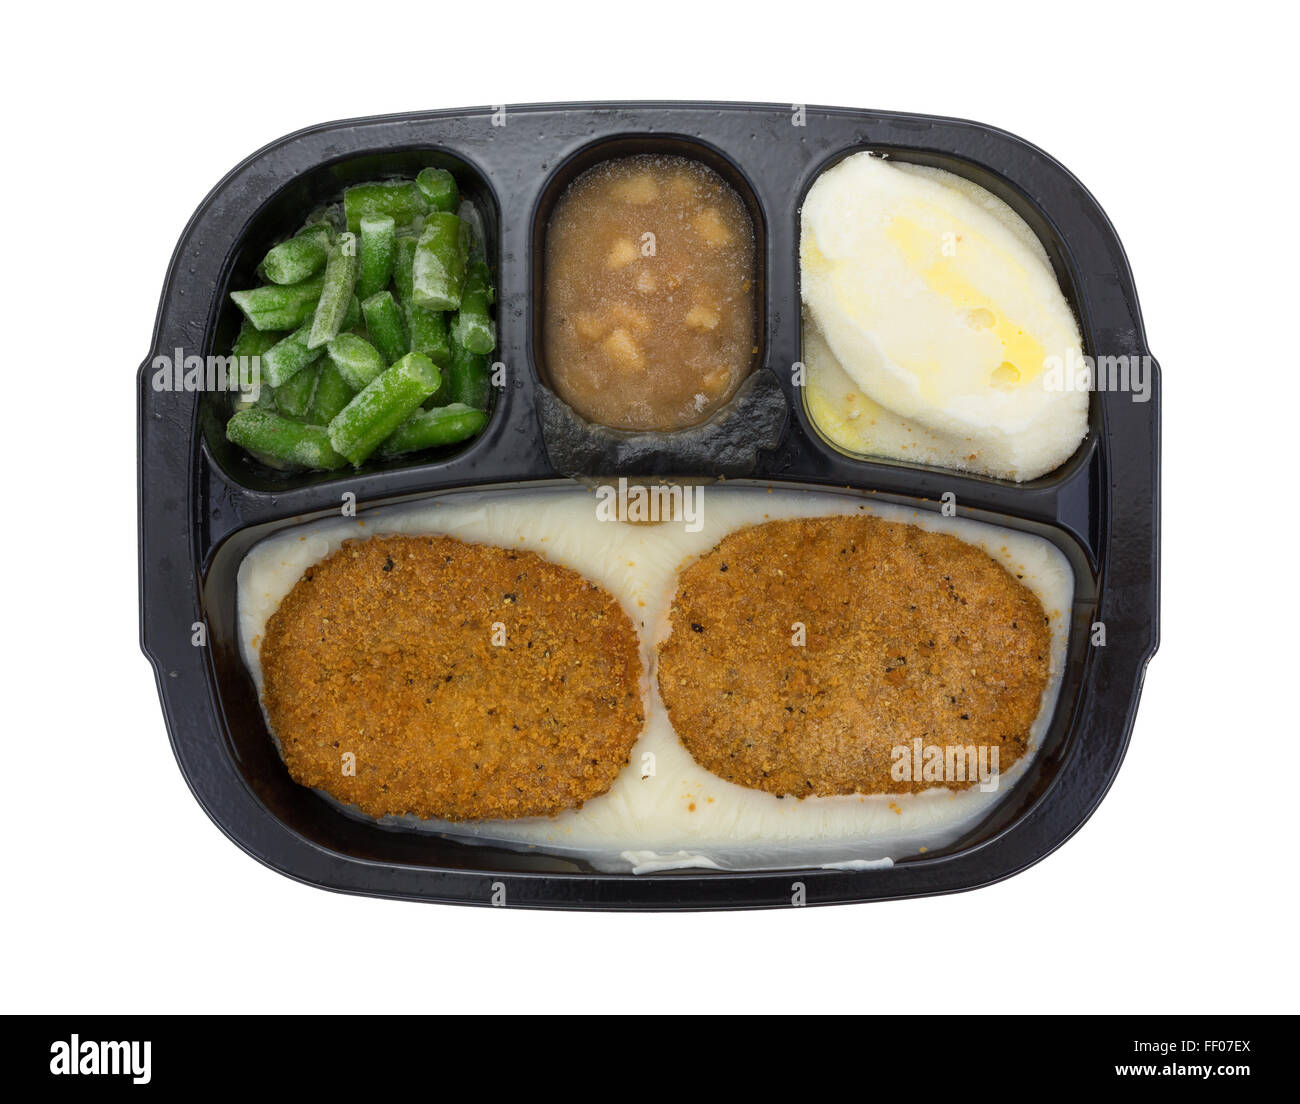 Top view of a frozen fried chicken patties TV dinner with potatoes, green beans and apples in sauce on a white background. - Stock Image